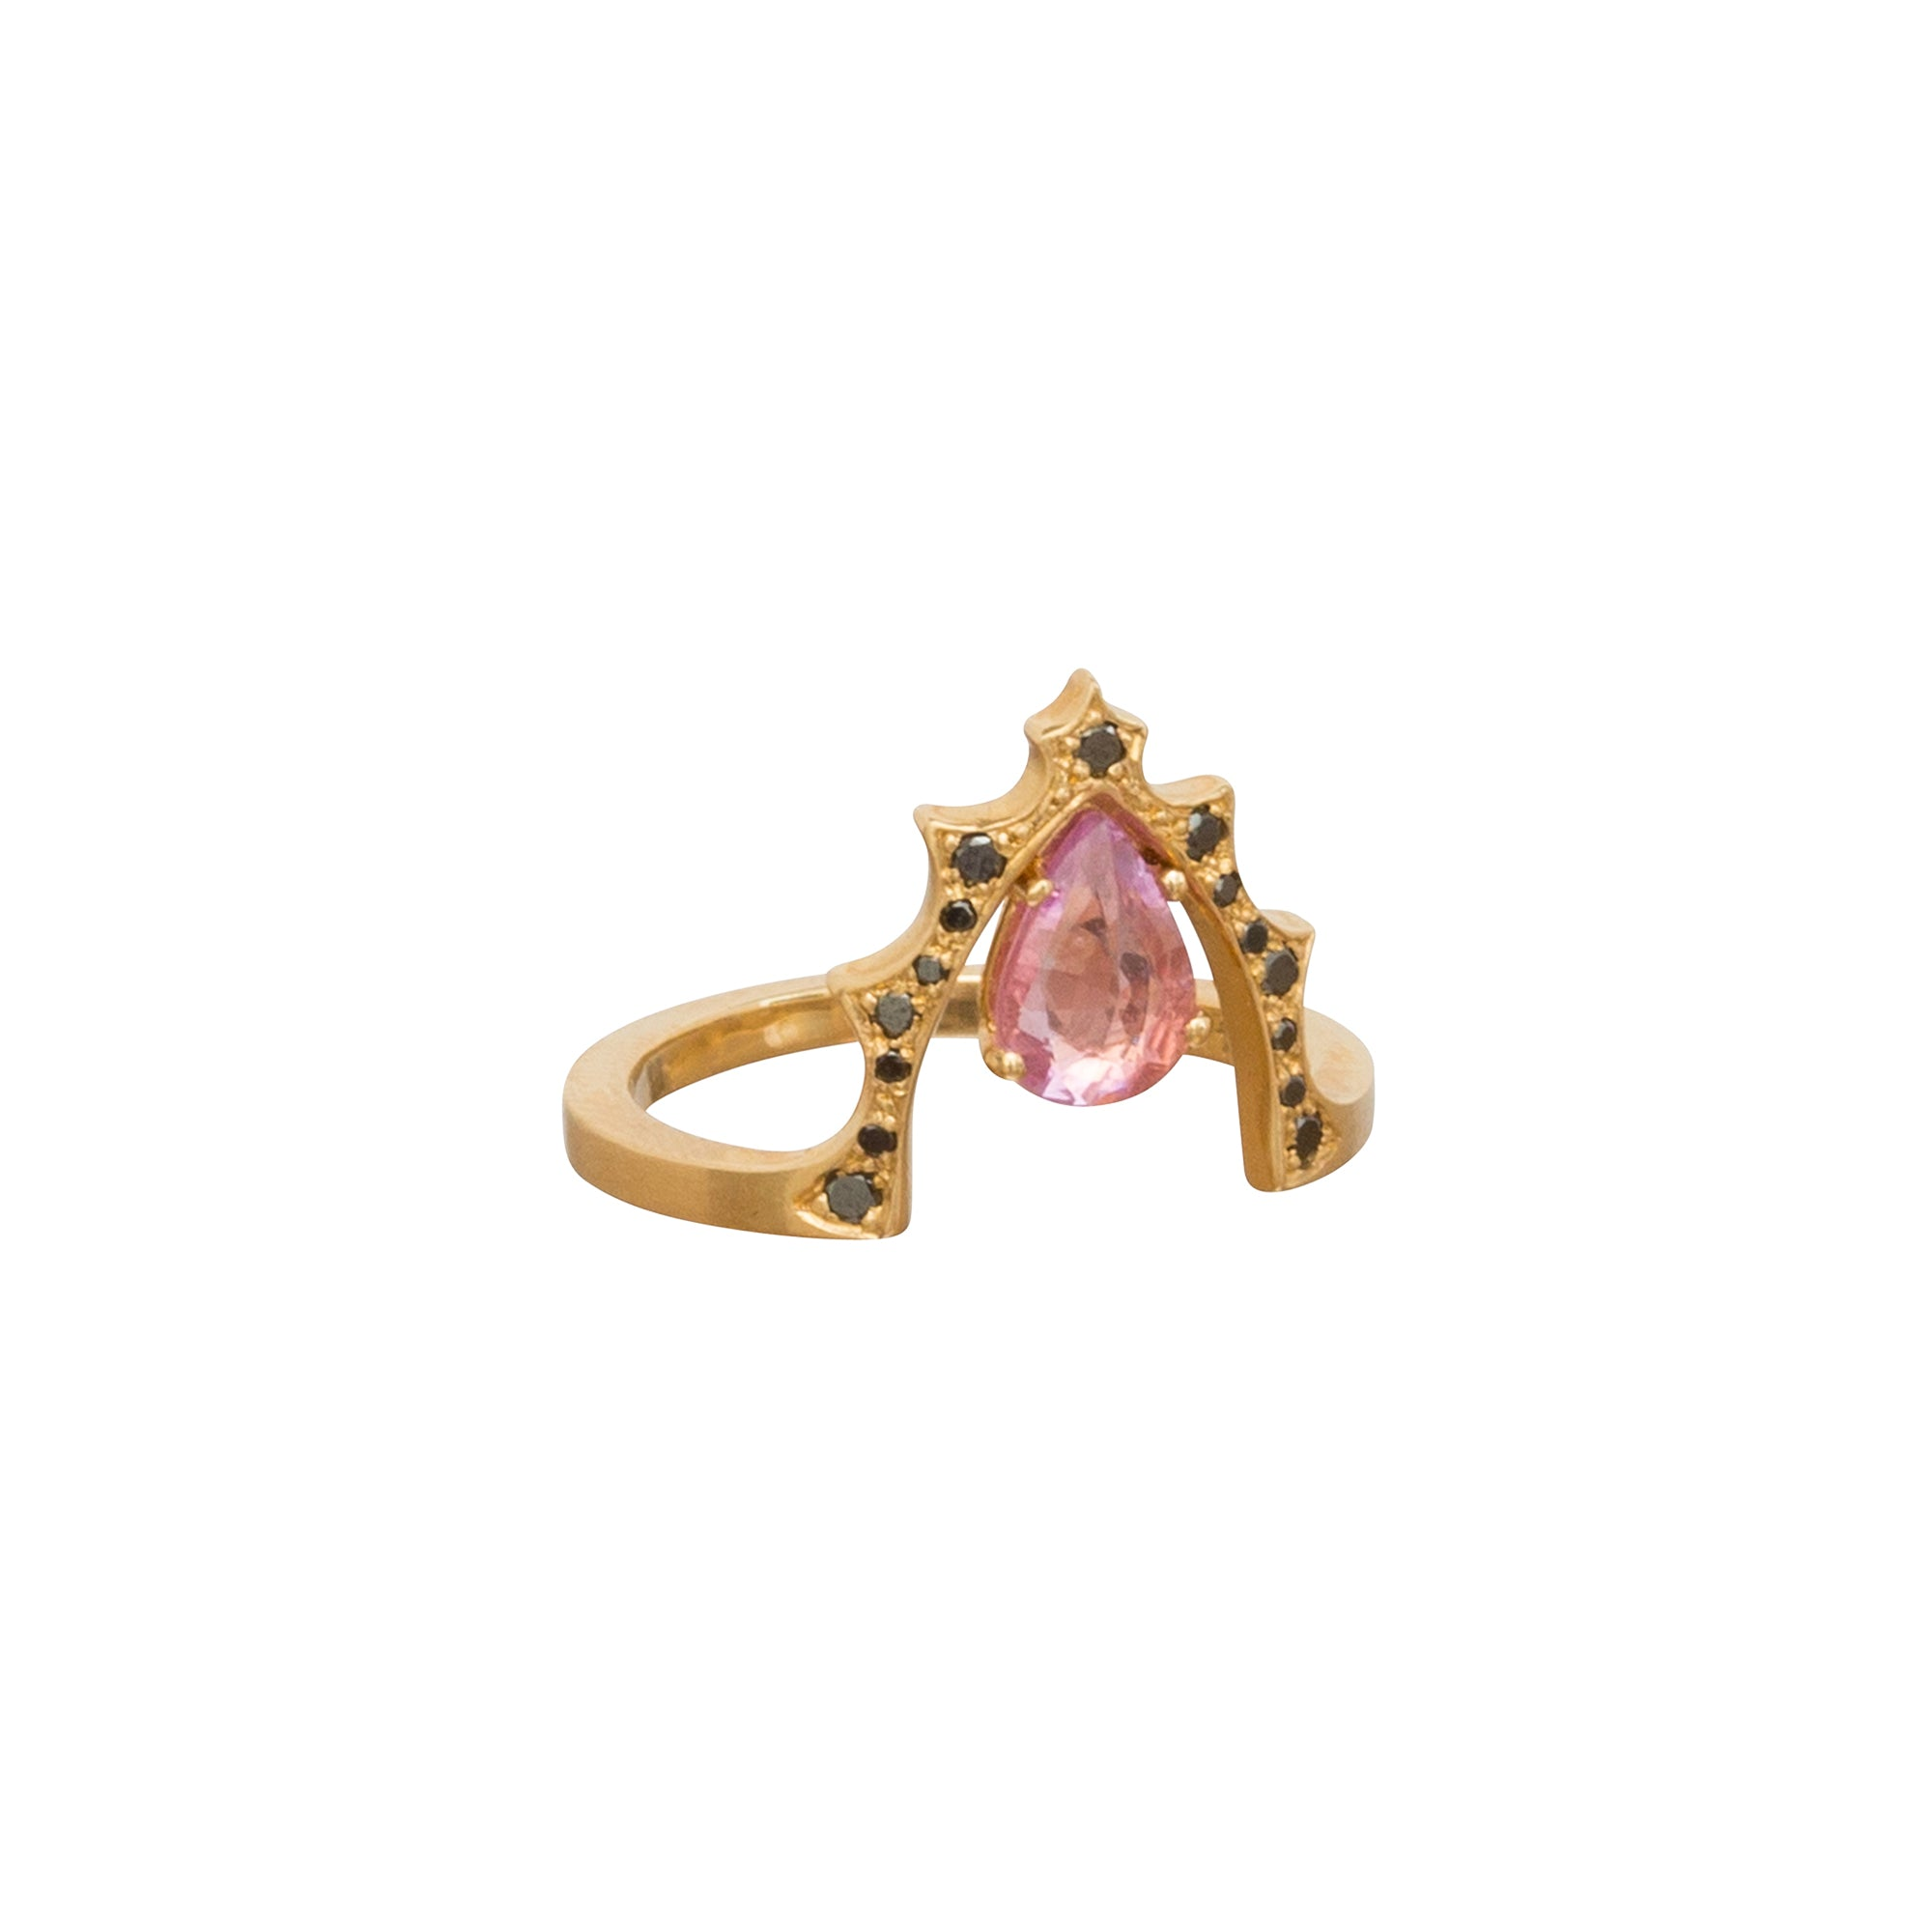 Gold Black Diamond Pink Sapphire King Ring by Michelle Fantaci for Broken English Jewelry